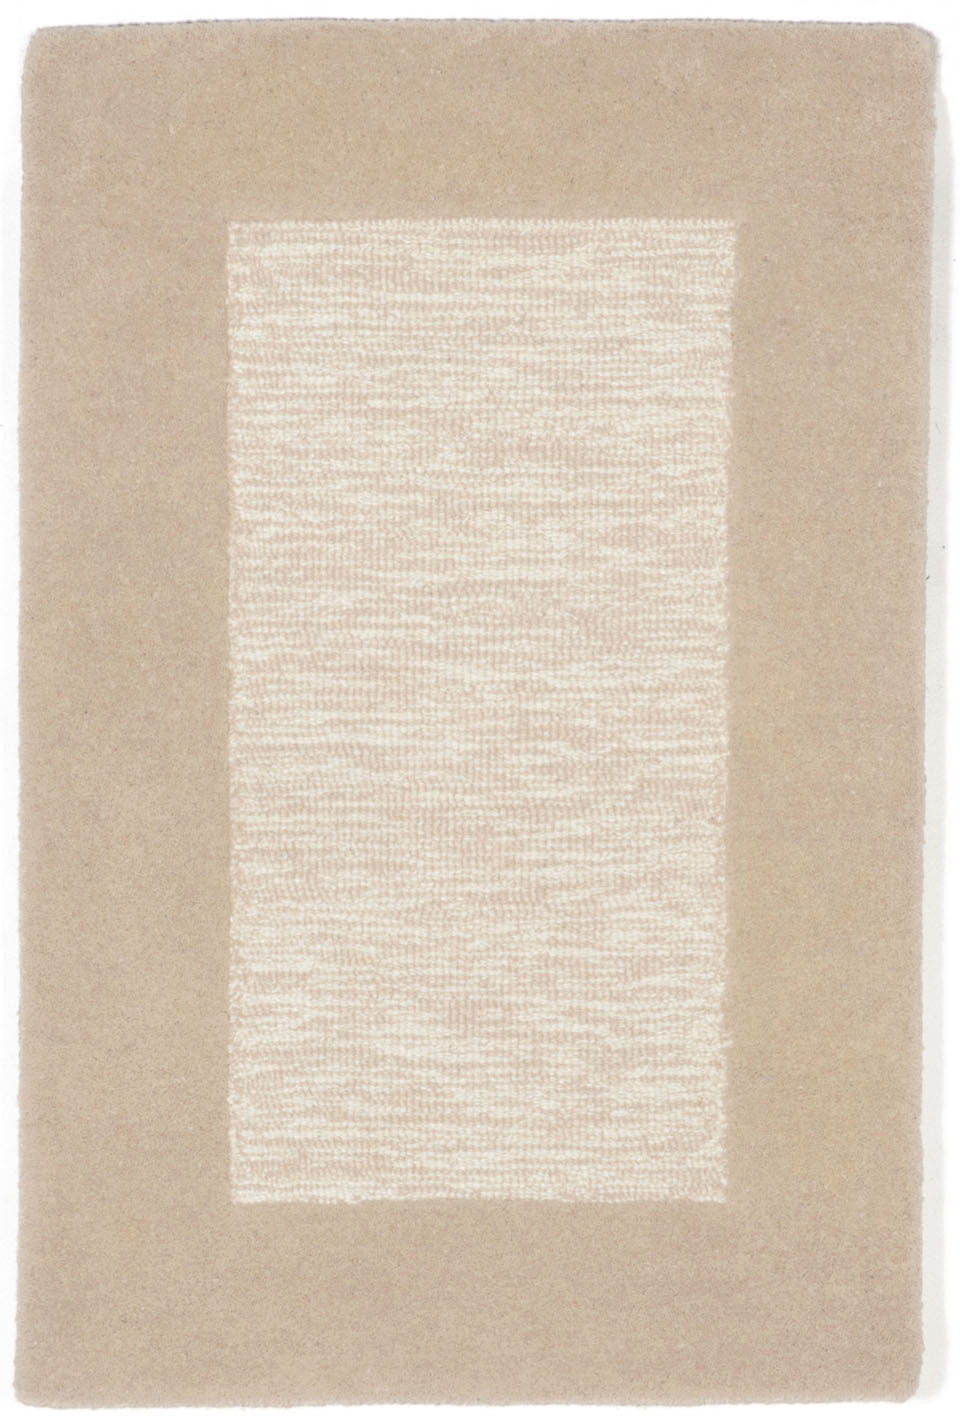 Trans-Ocean Imports MAD23130012 Madrid Collection Natural Finish Indoor Rug